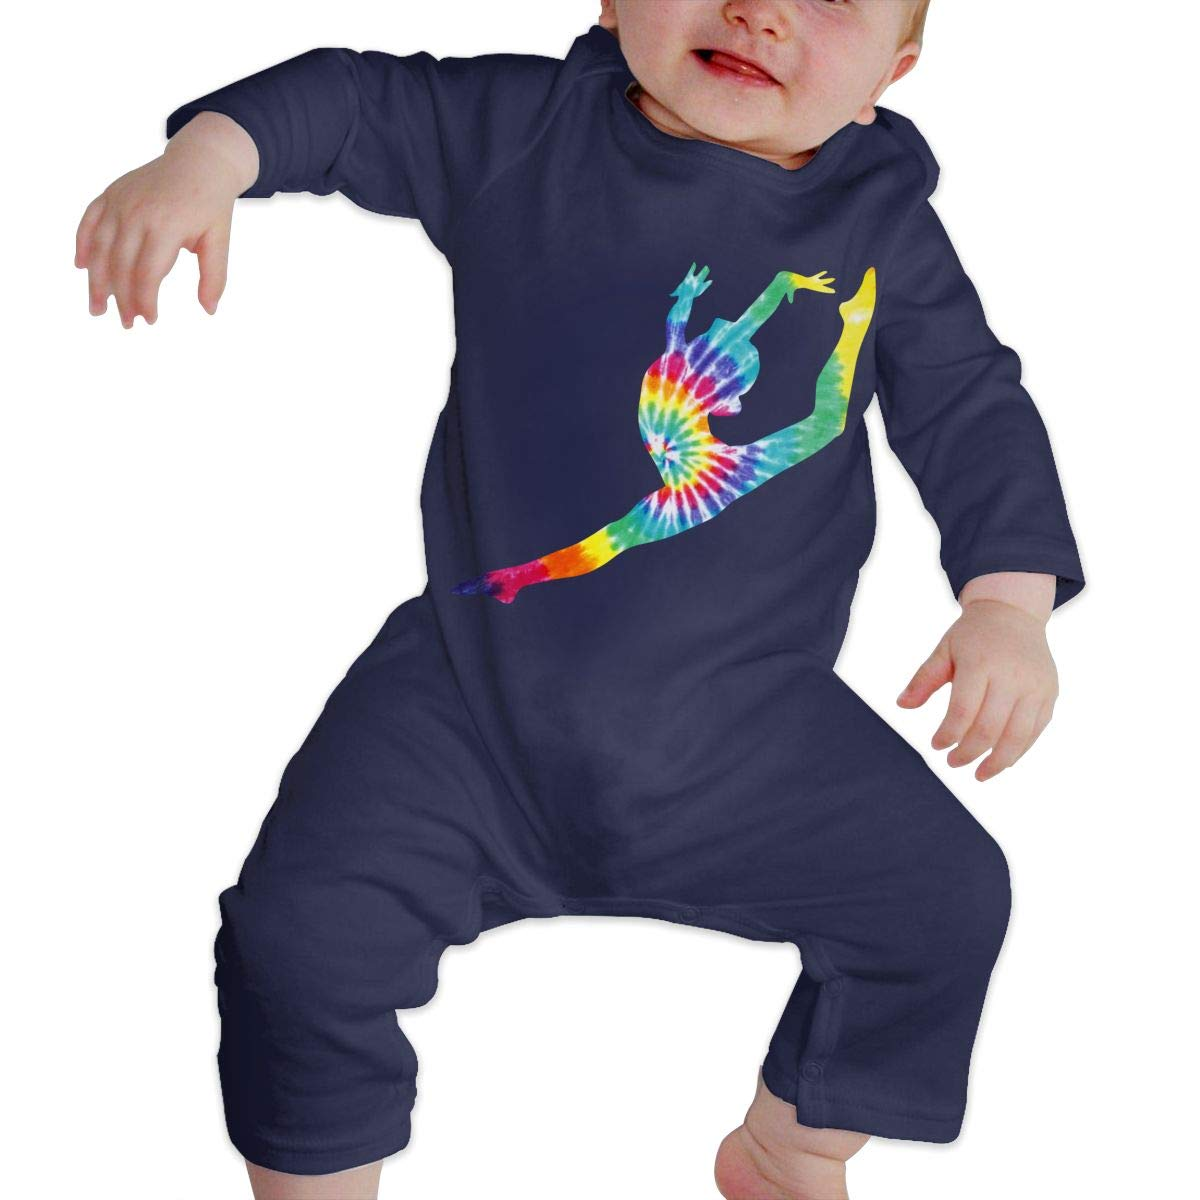 LBJQ8 Tie Dye Dancer Gymnast Silhouette1 Infant Girls Boys Essential Basic Bodysuit Jumpsuit Outfits